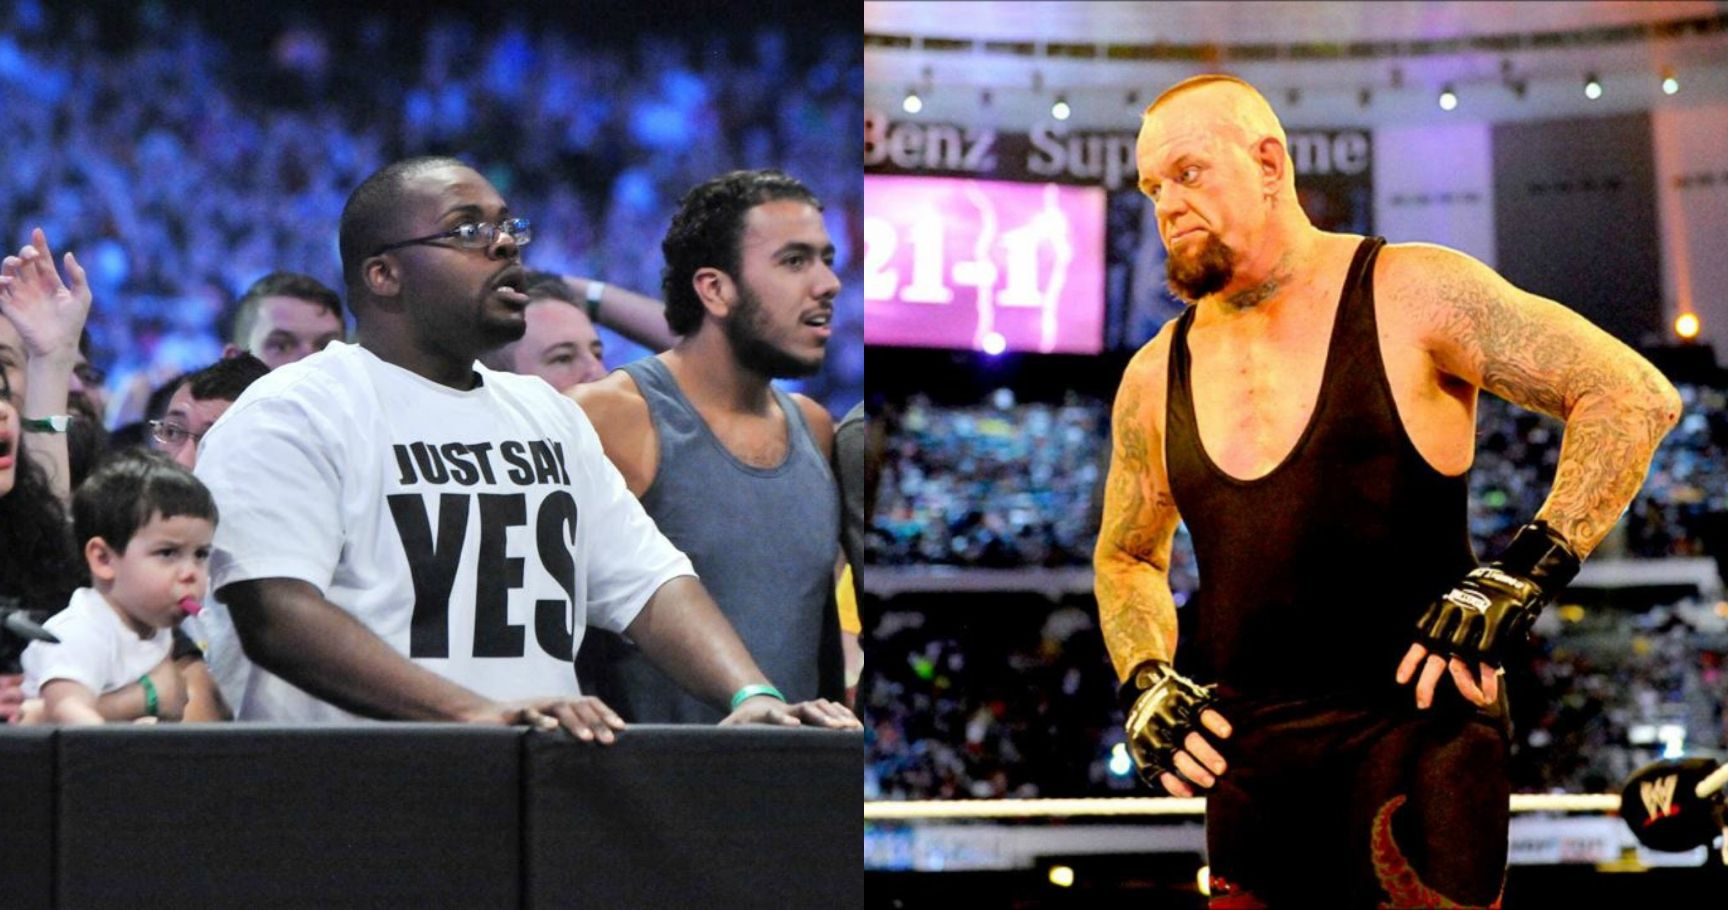 15 Reasons The Undertaker Won't Win At WrestleMania 33